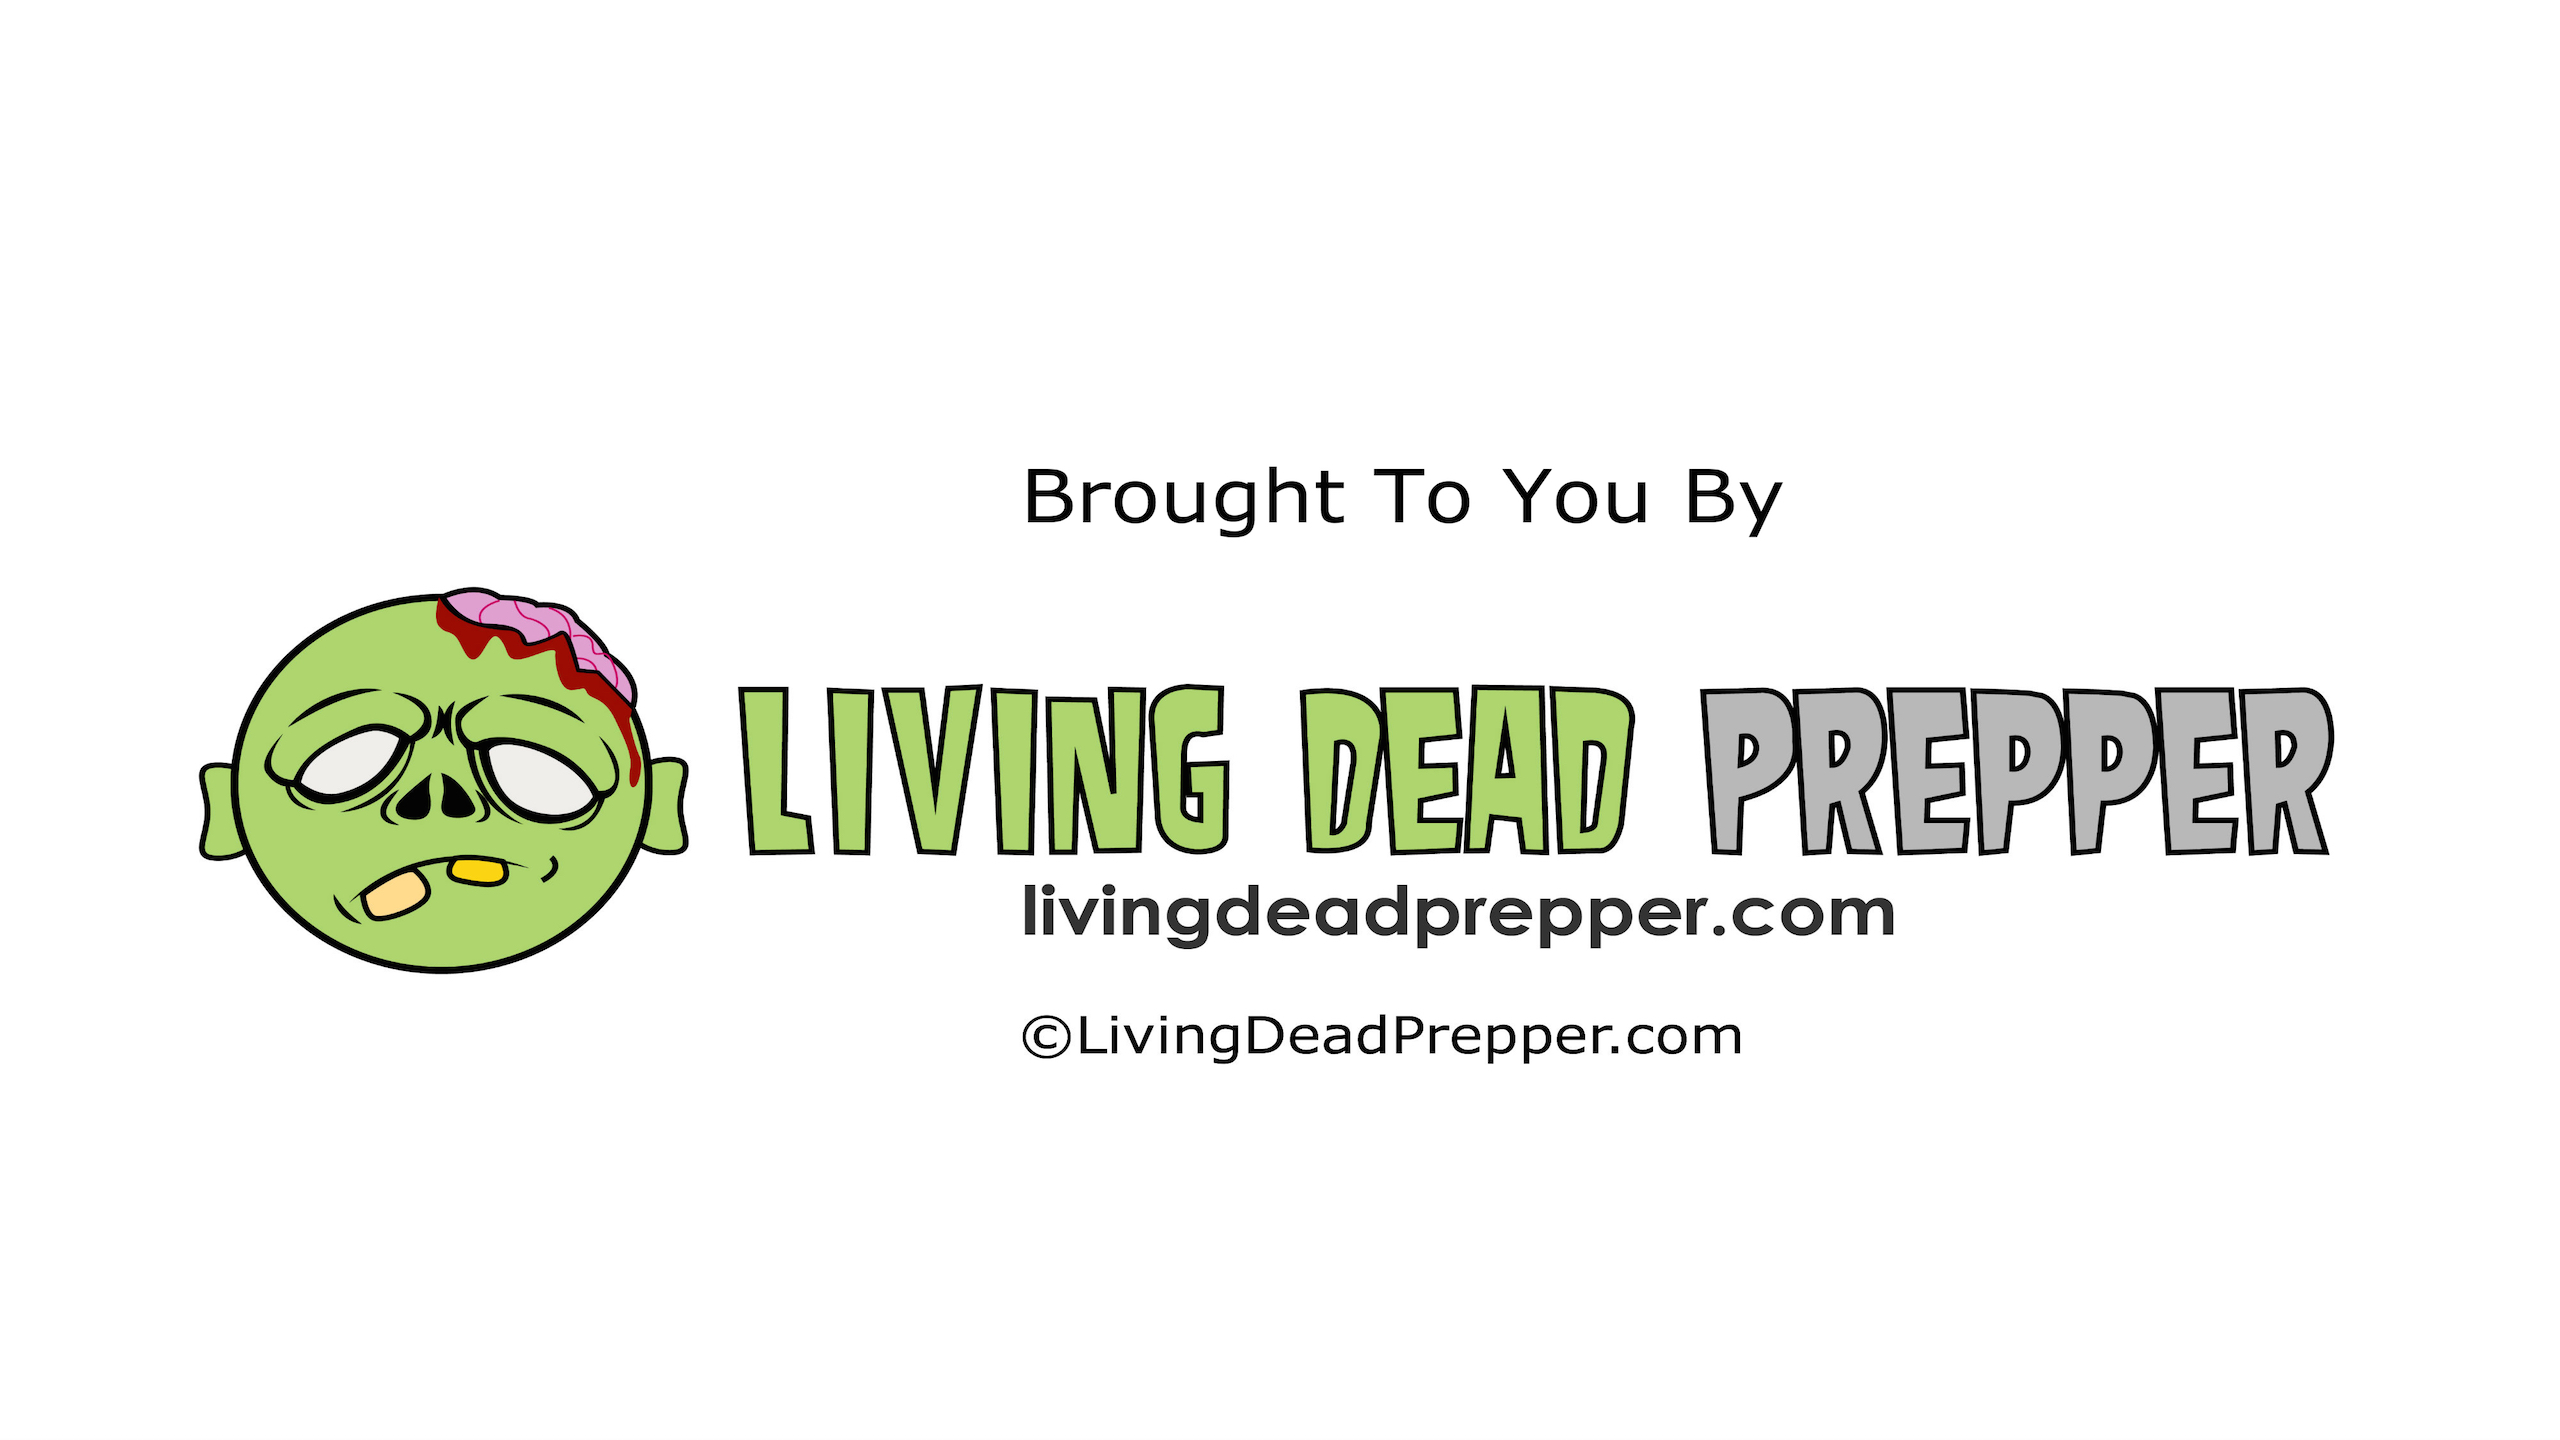 write for us living dead prepper yes living dead pepper is looking for writers and you ll get paid for your contributions and get a byline links in your articles